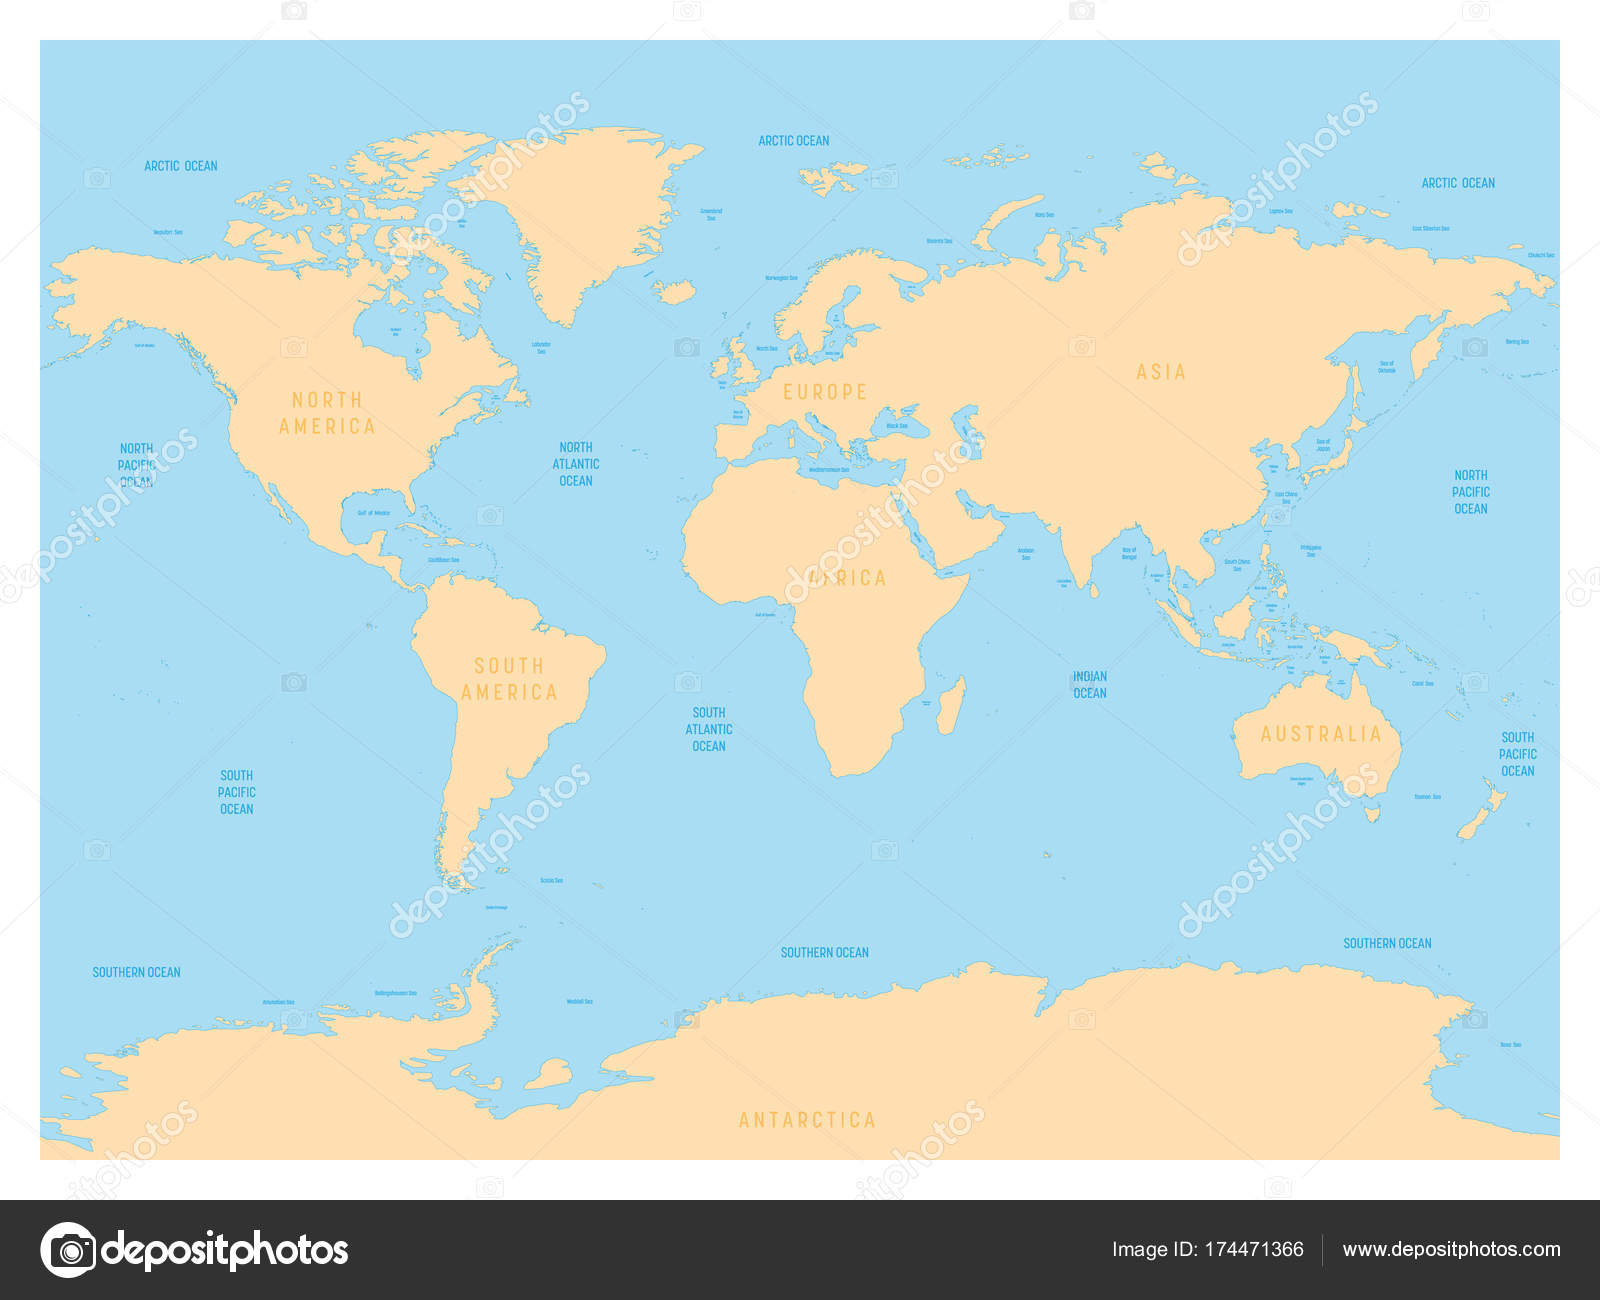 Hydrological map of world with labels of oceans seas gulfs bays hydrological map of world with labels of oceans seas gulfs bays and straits gumiabroncs Image collections